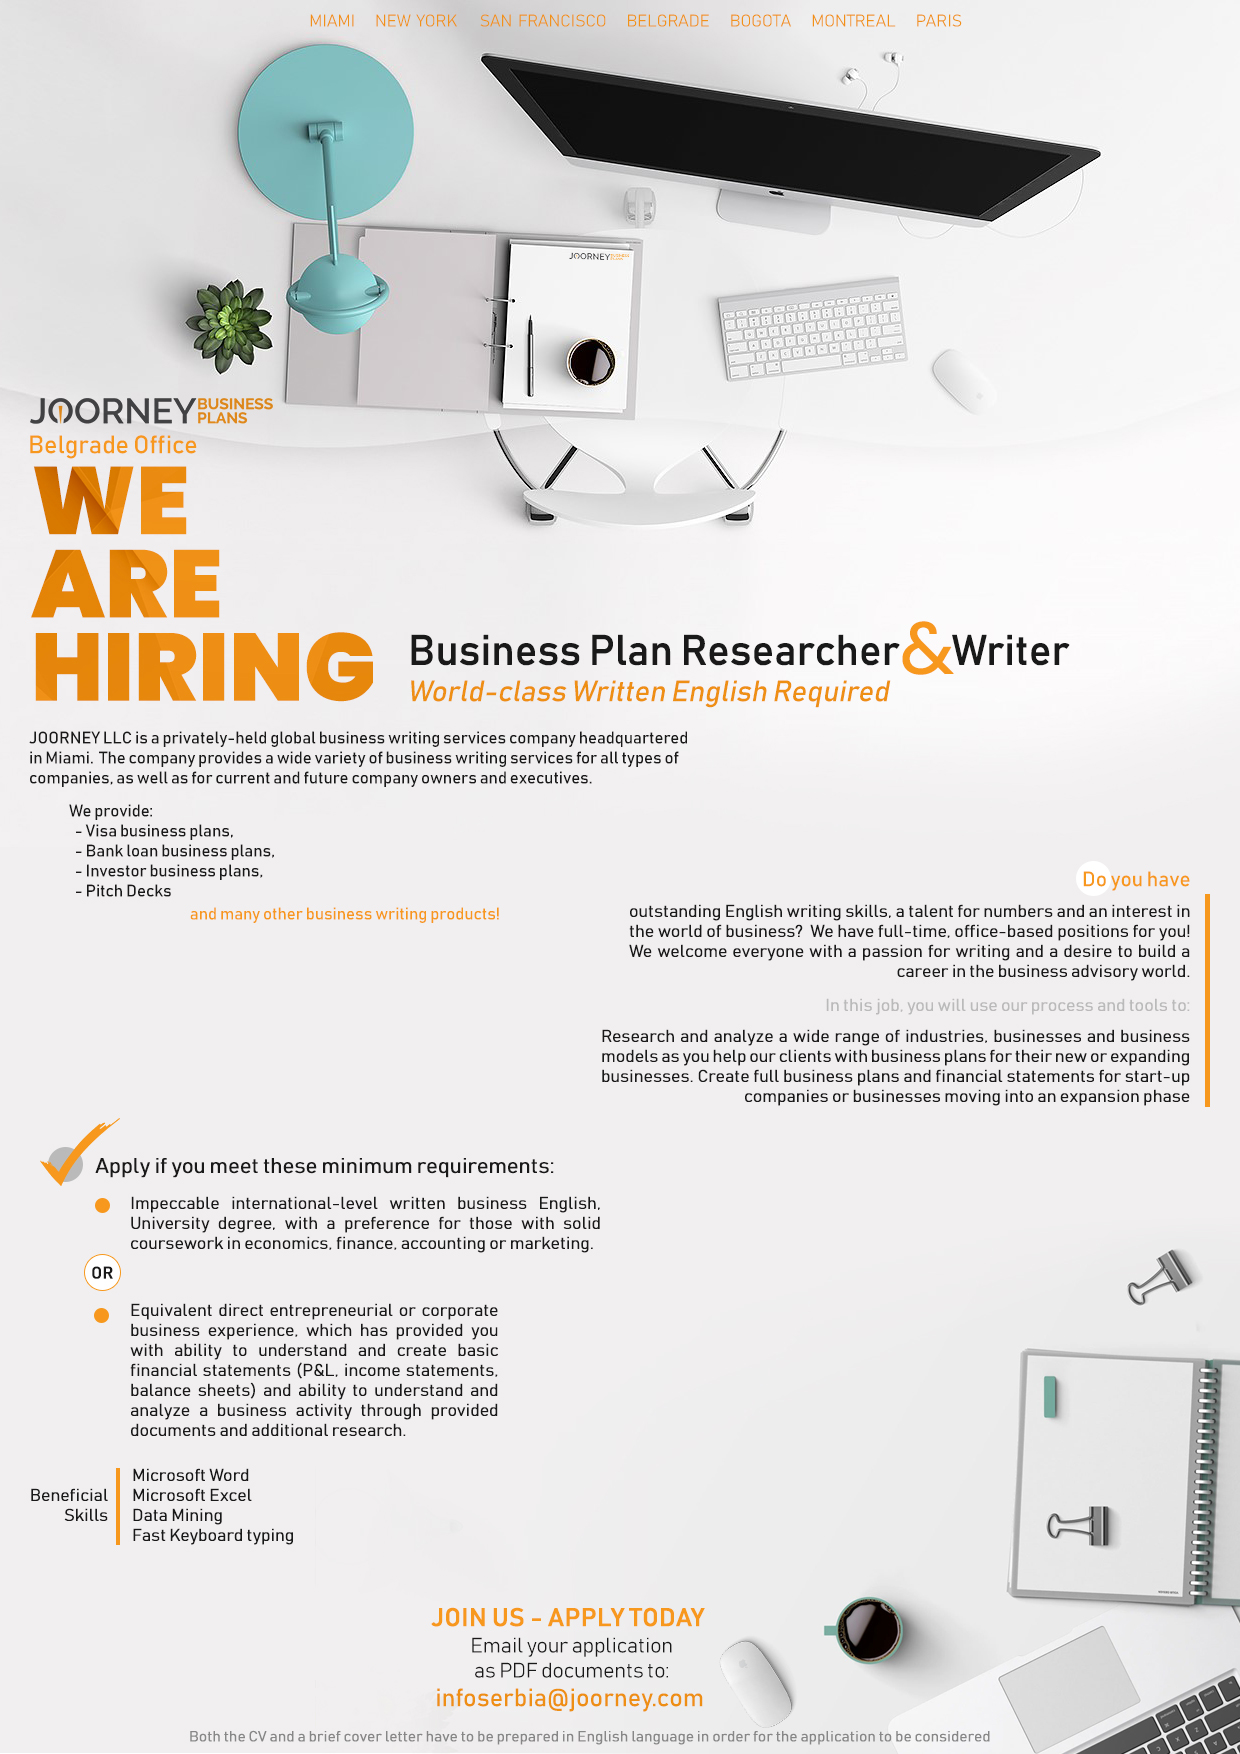 Business Plan Researcher and Writer